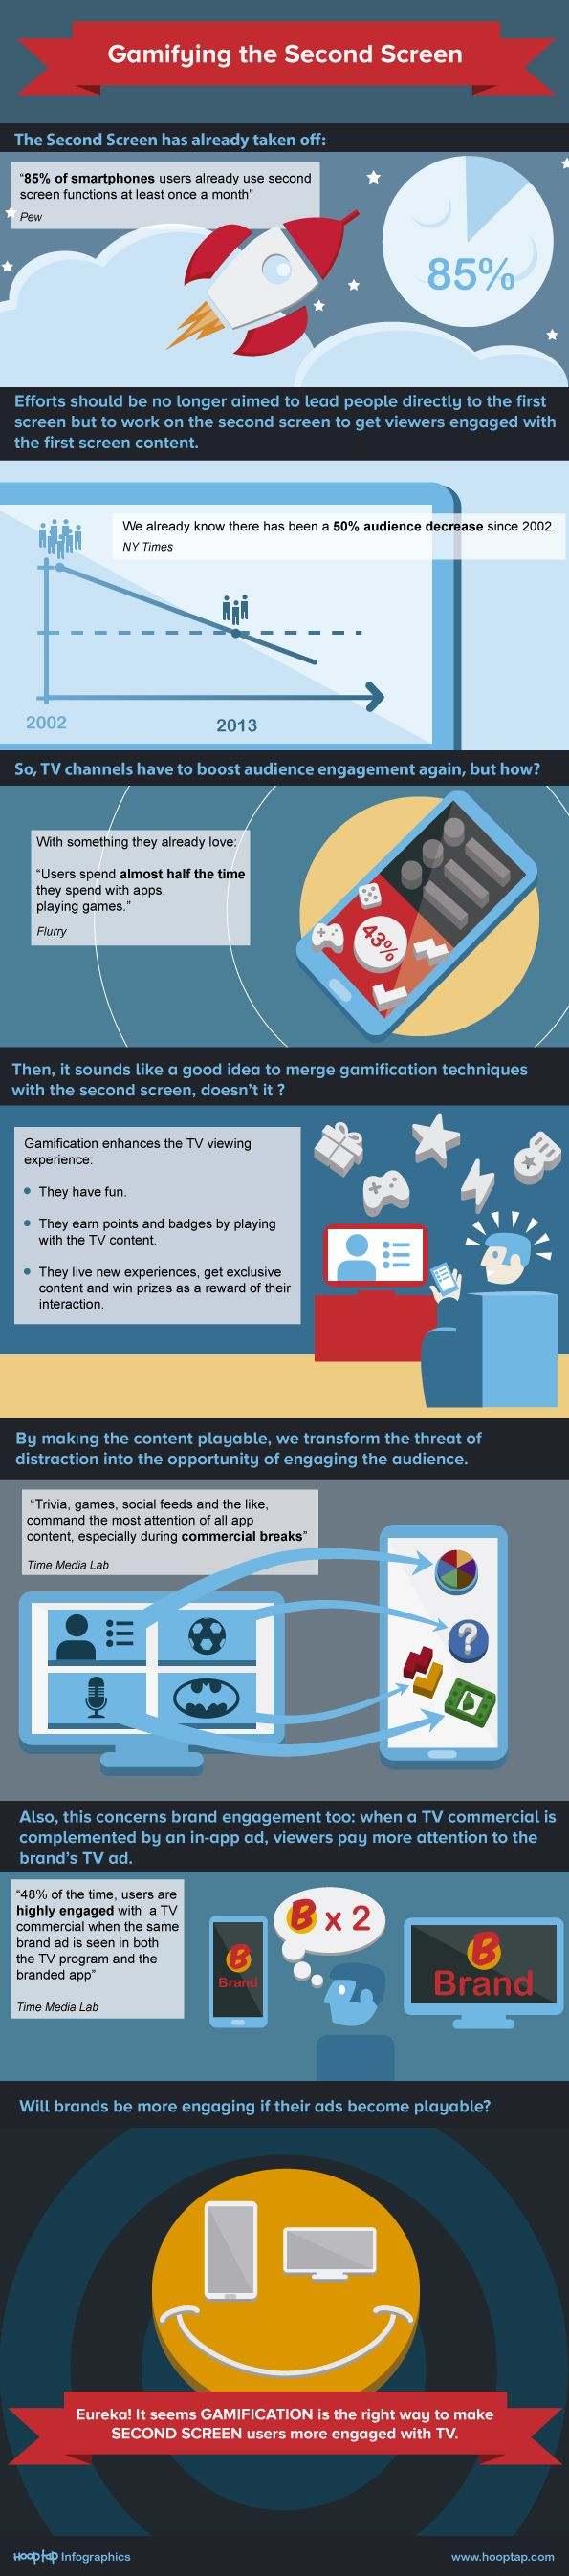 Gamifying the Second Screen - infographic